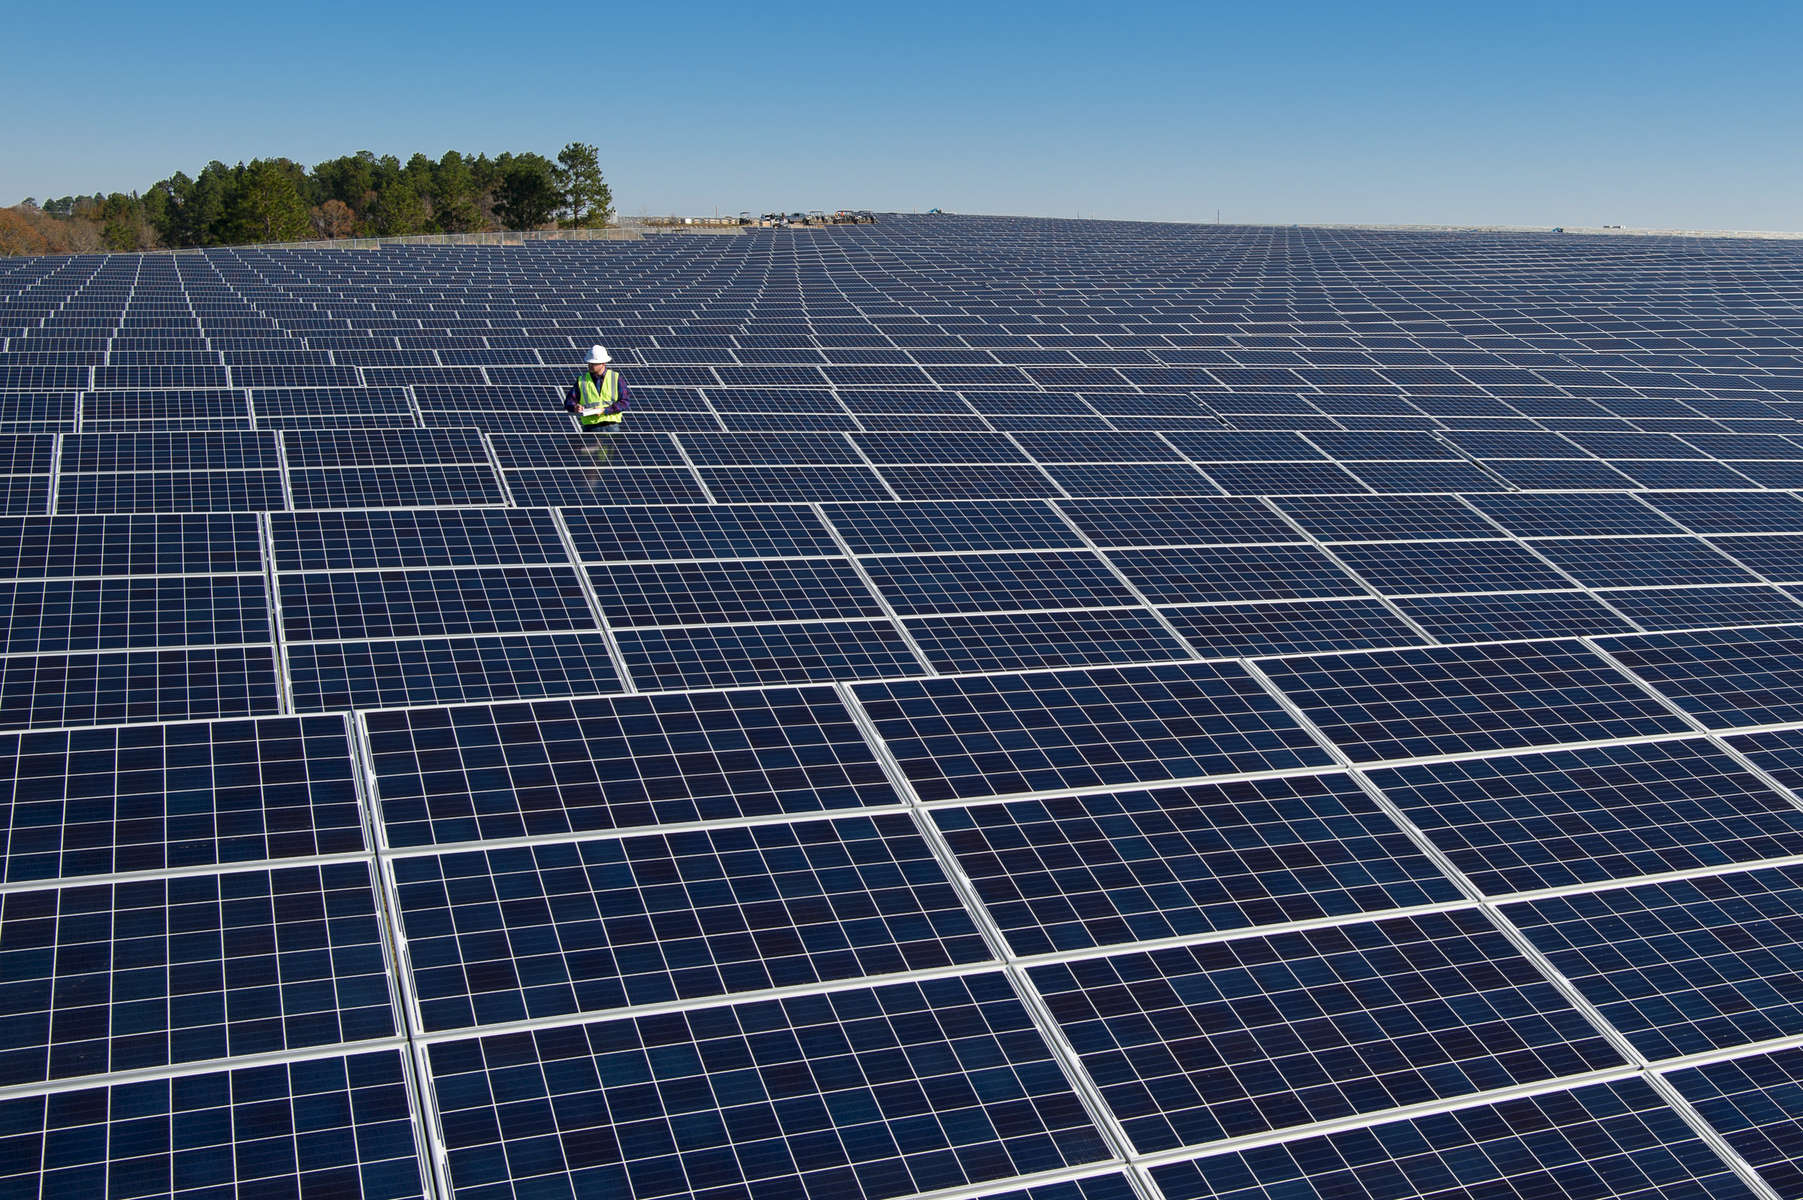 Working inspecting a solar field